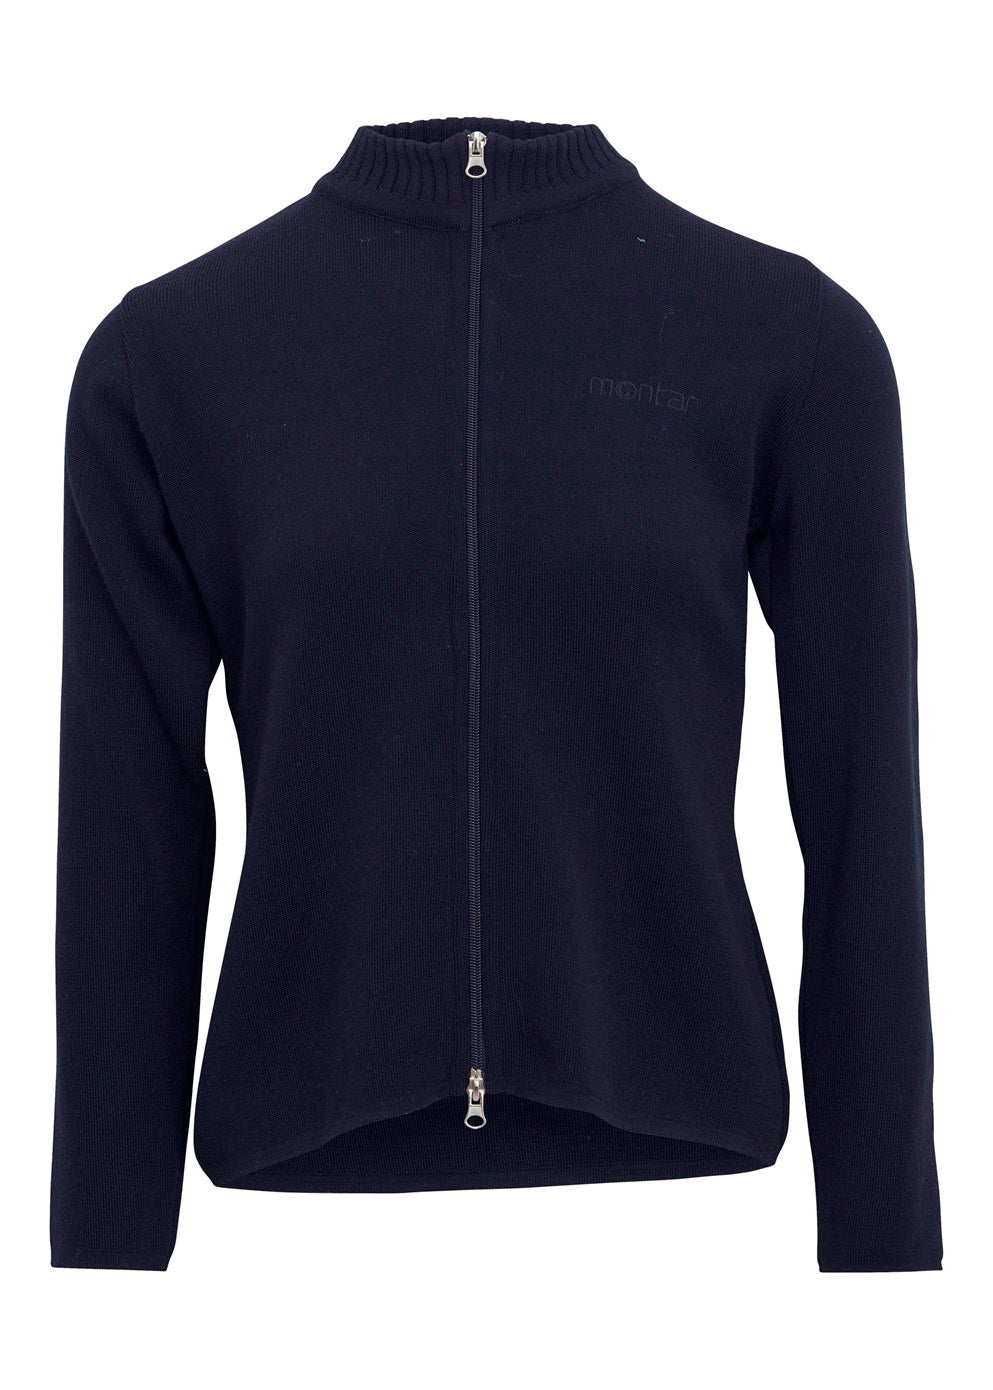 Montar Monica Knit - The Dressage Store